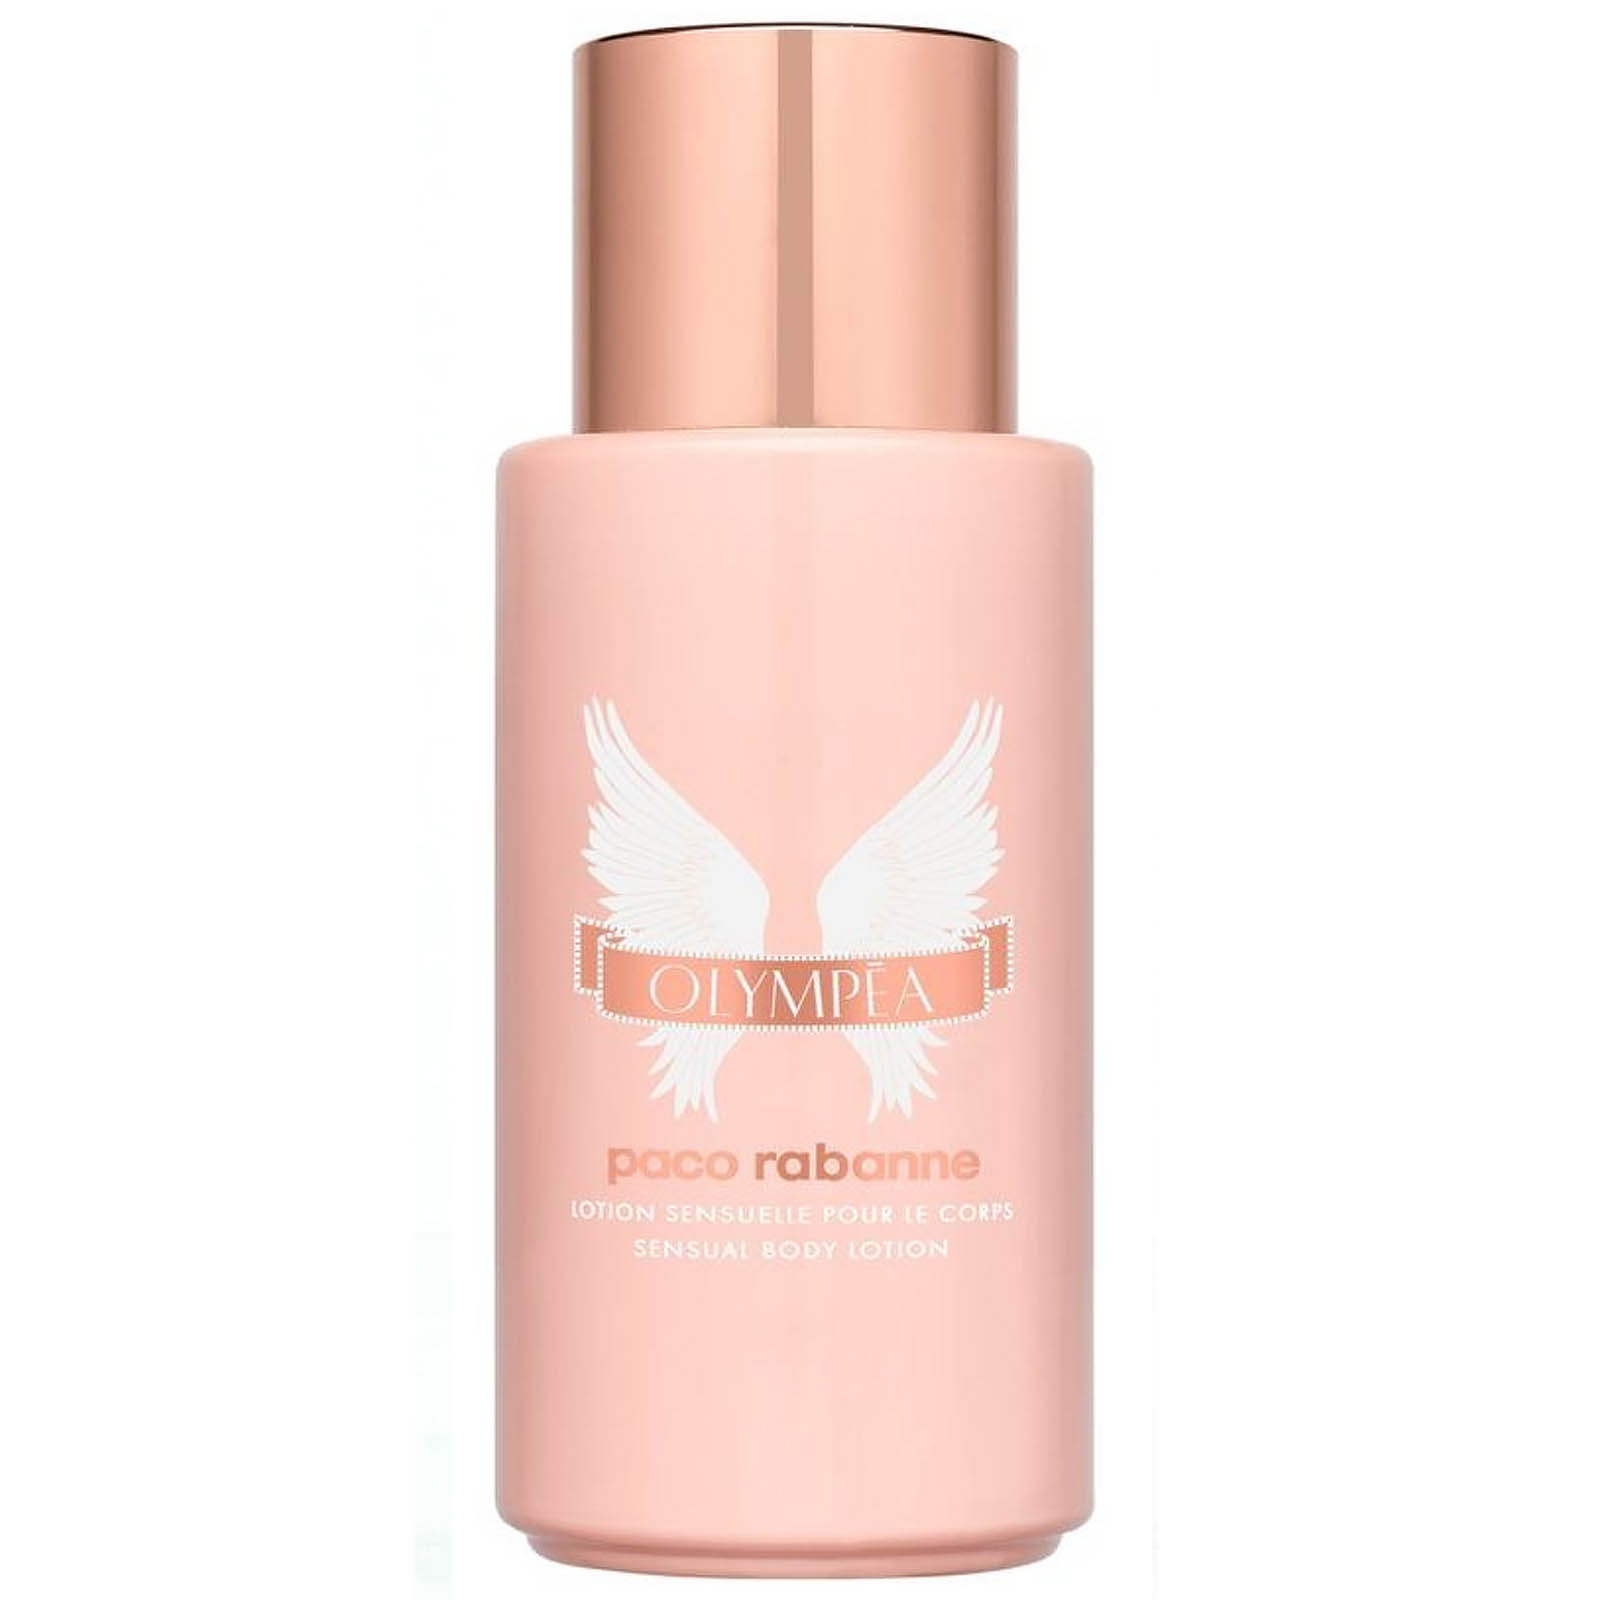 paco rabanne olympéa body lotion 200ml